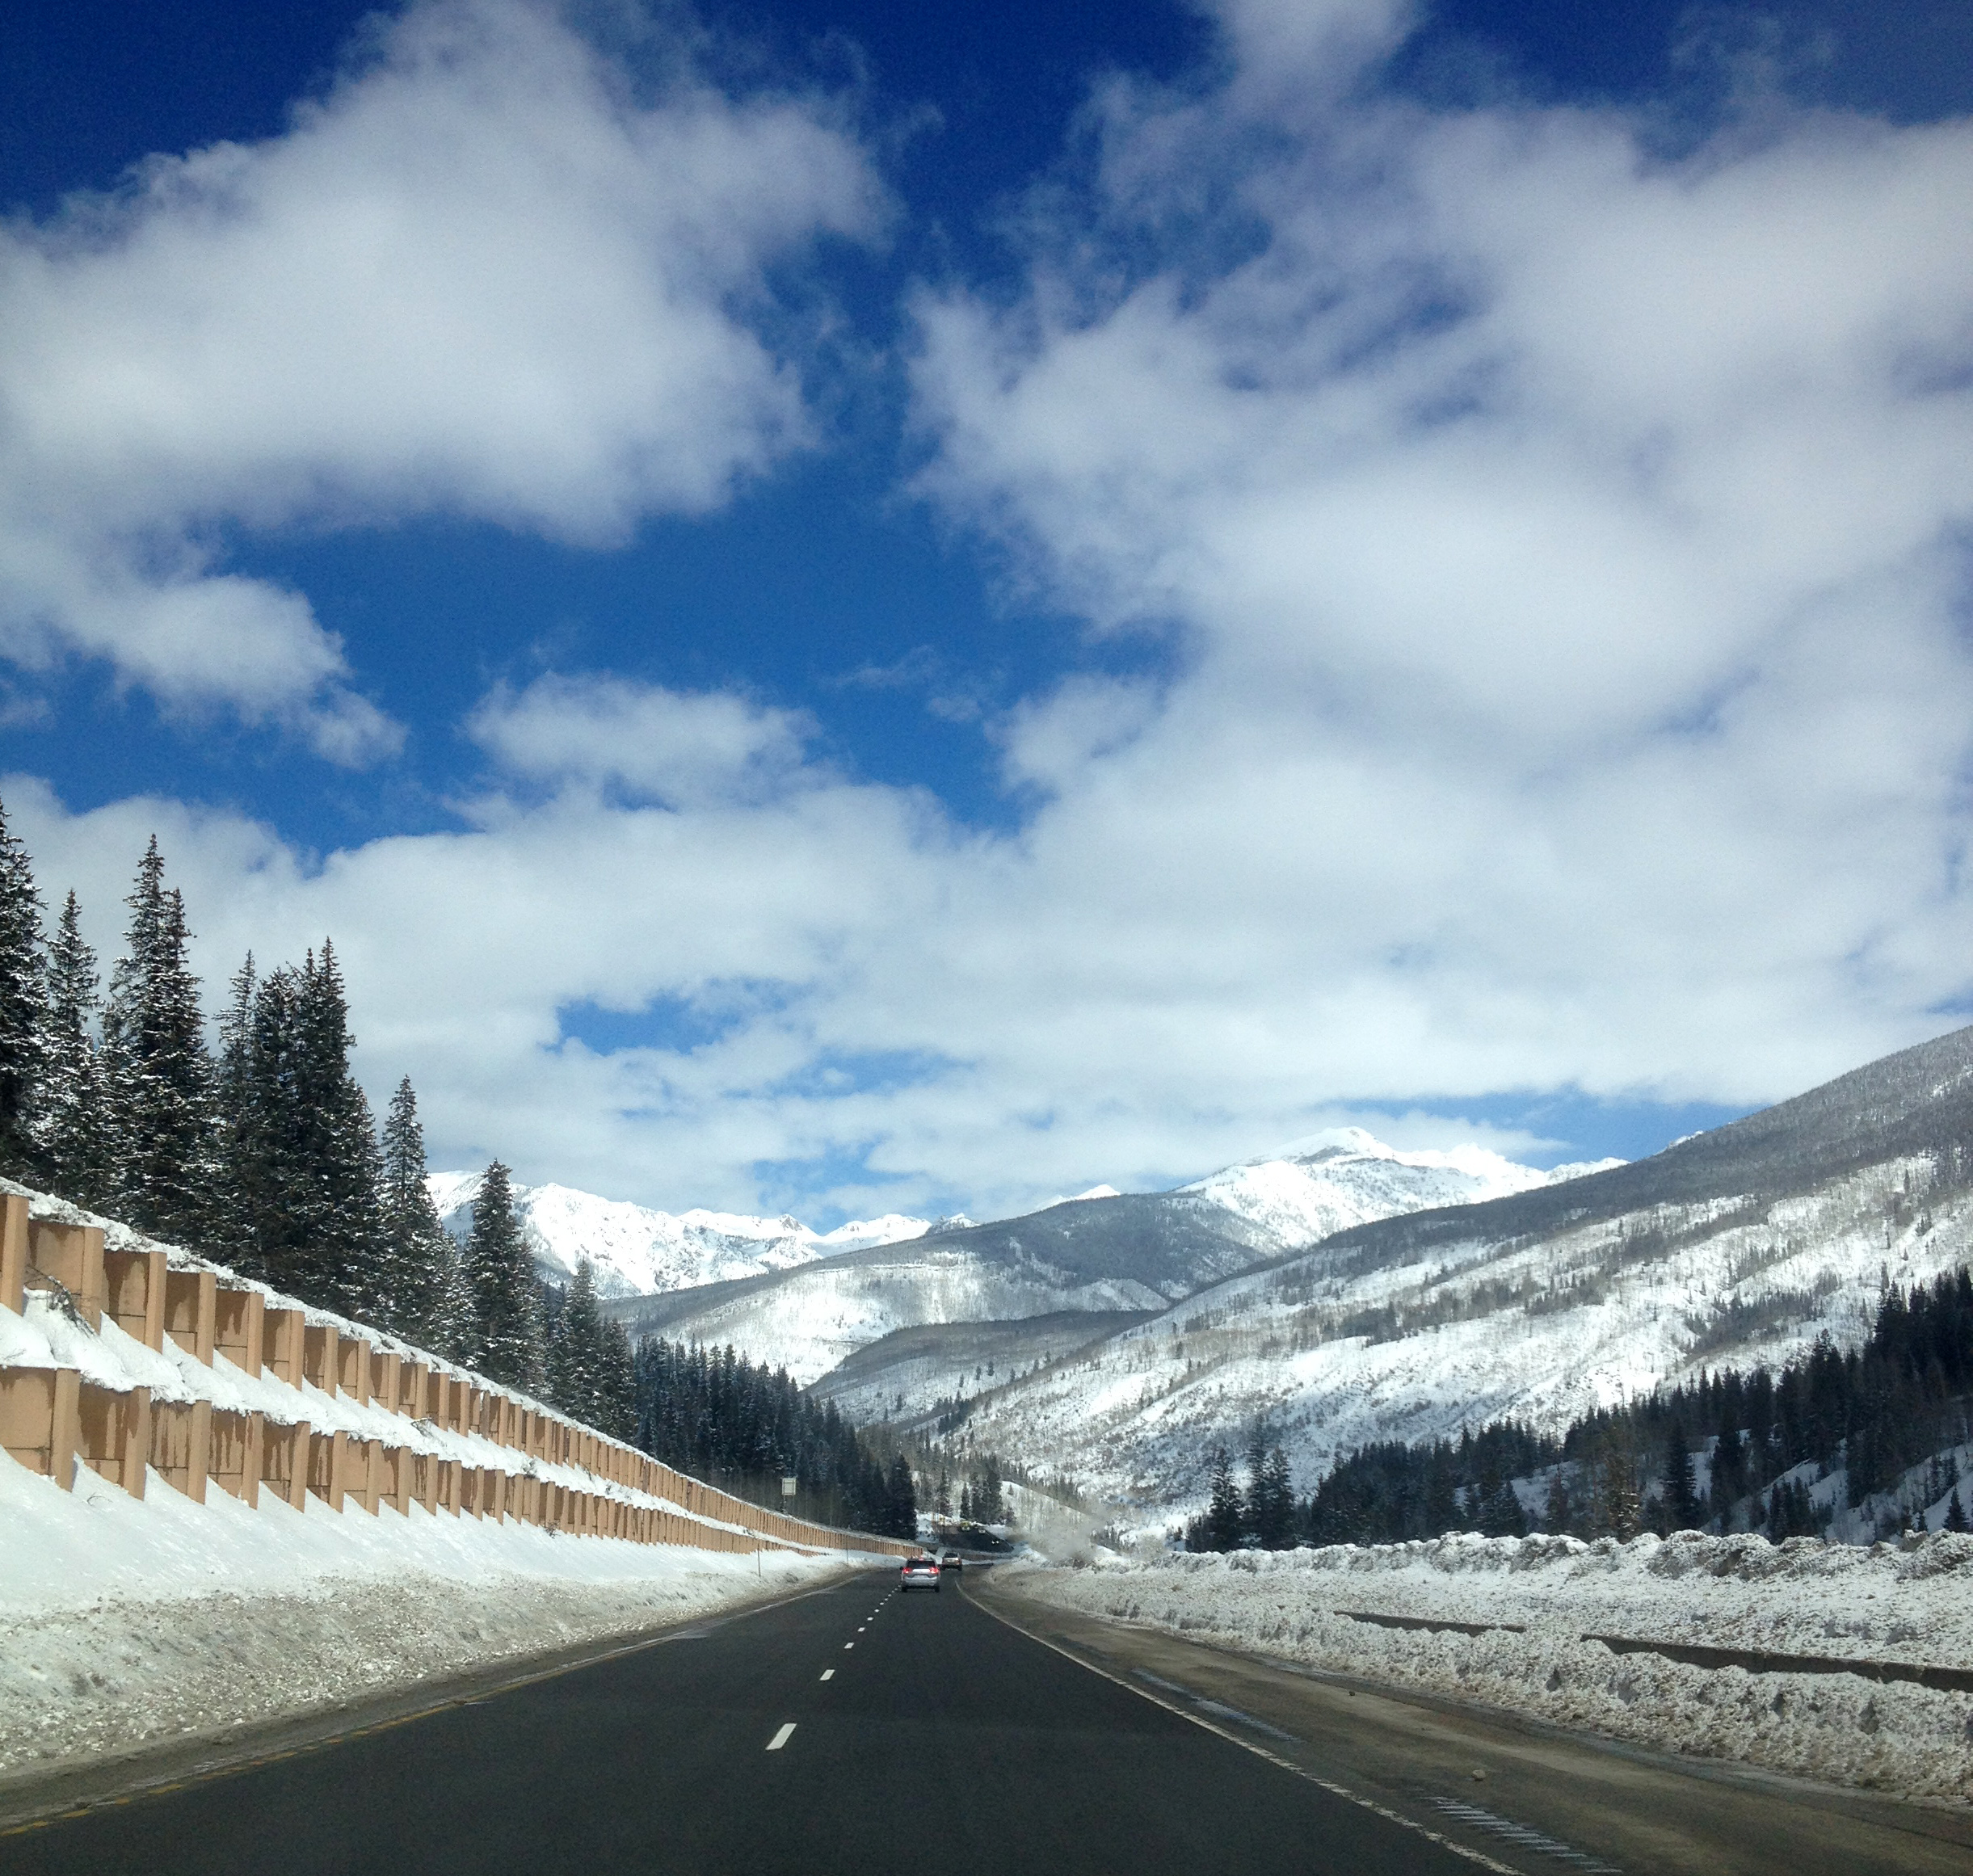 Leaving Colorado. Somewhere around Vail Pass.